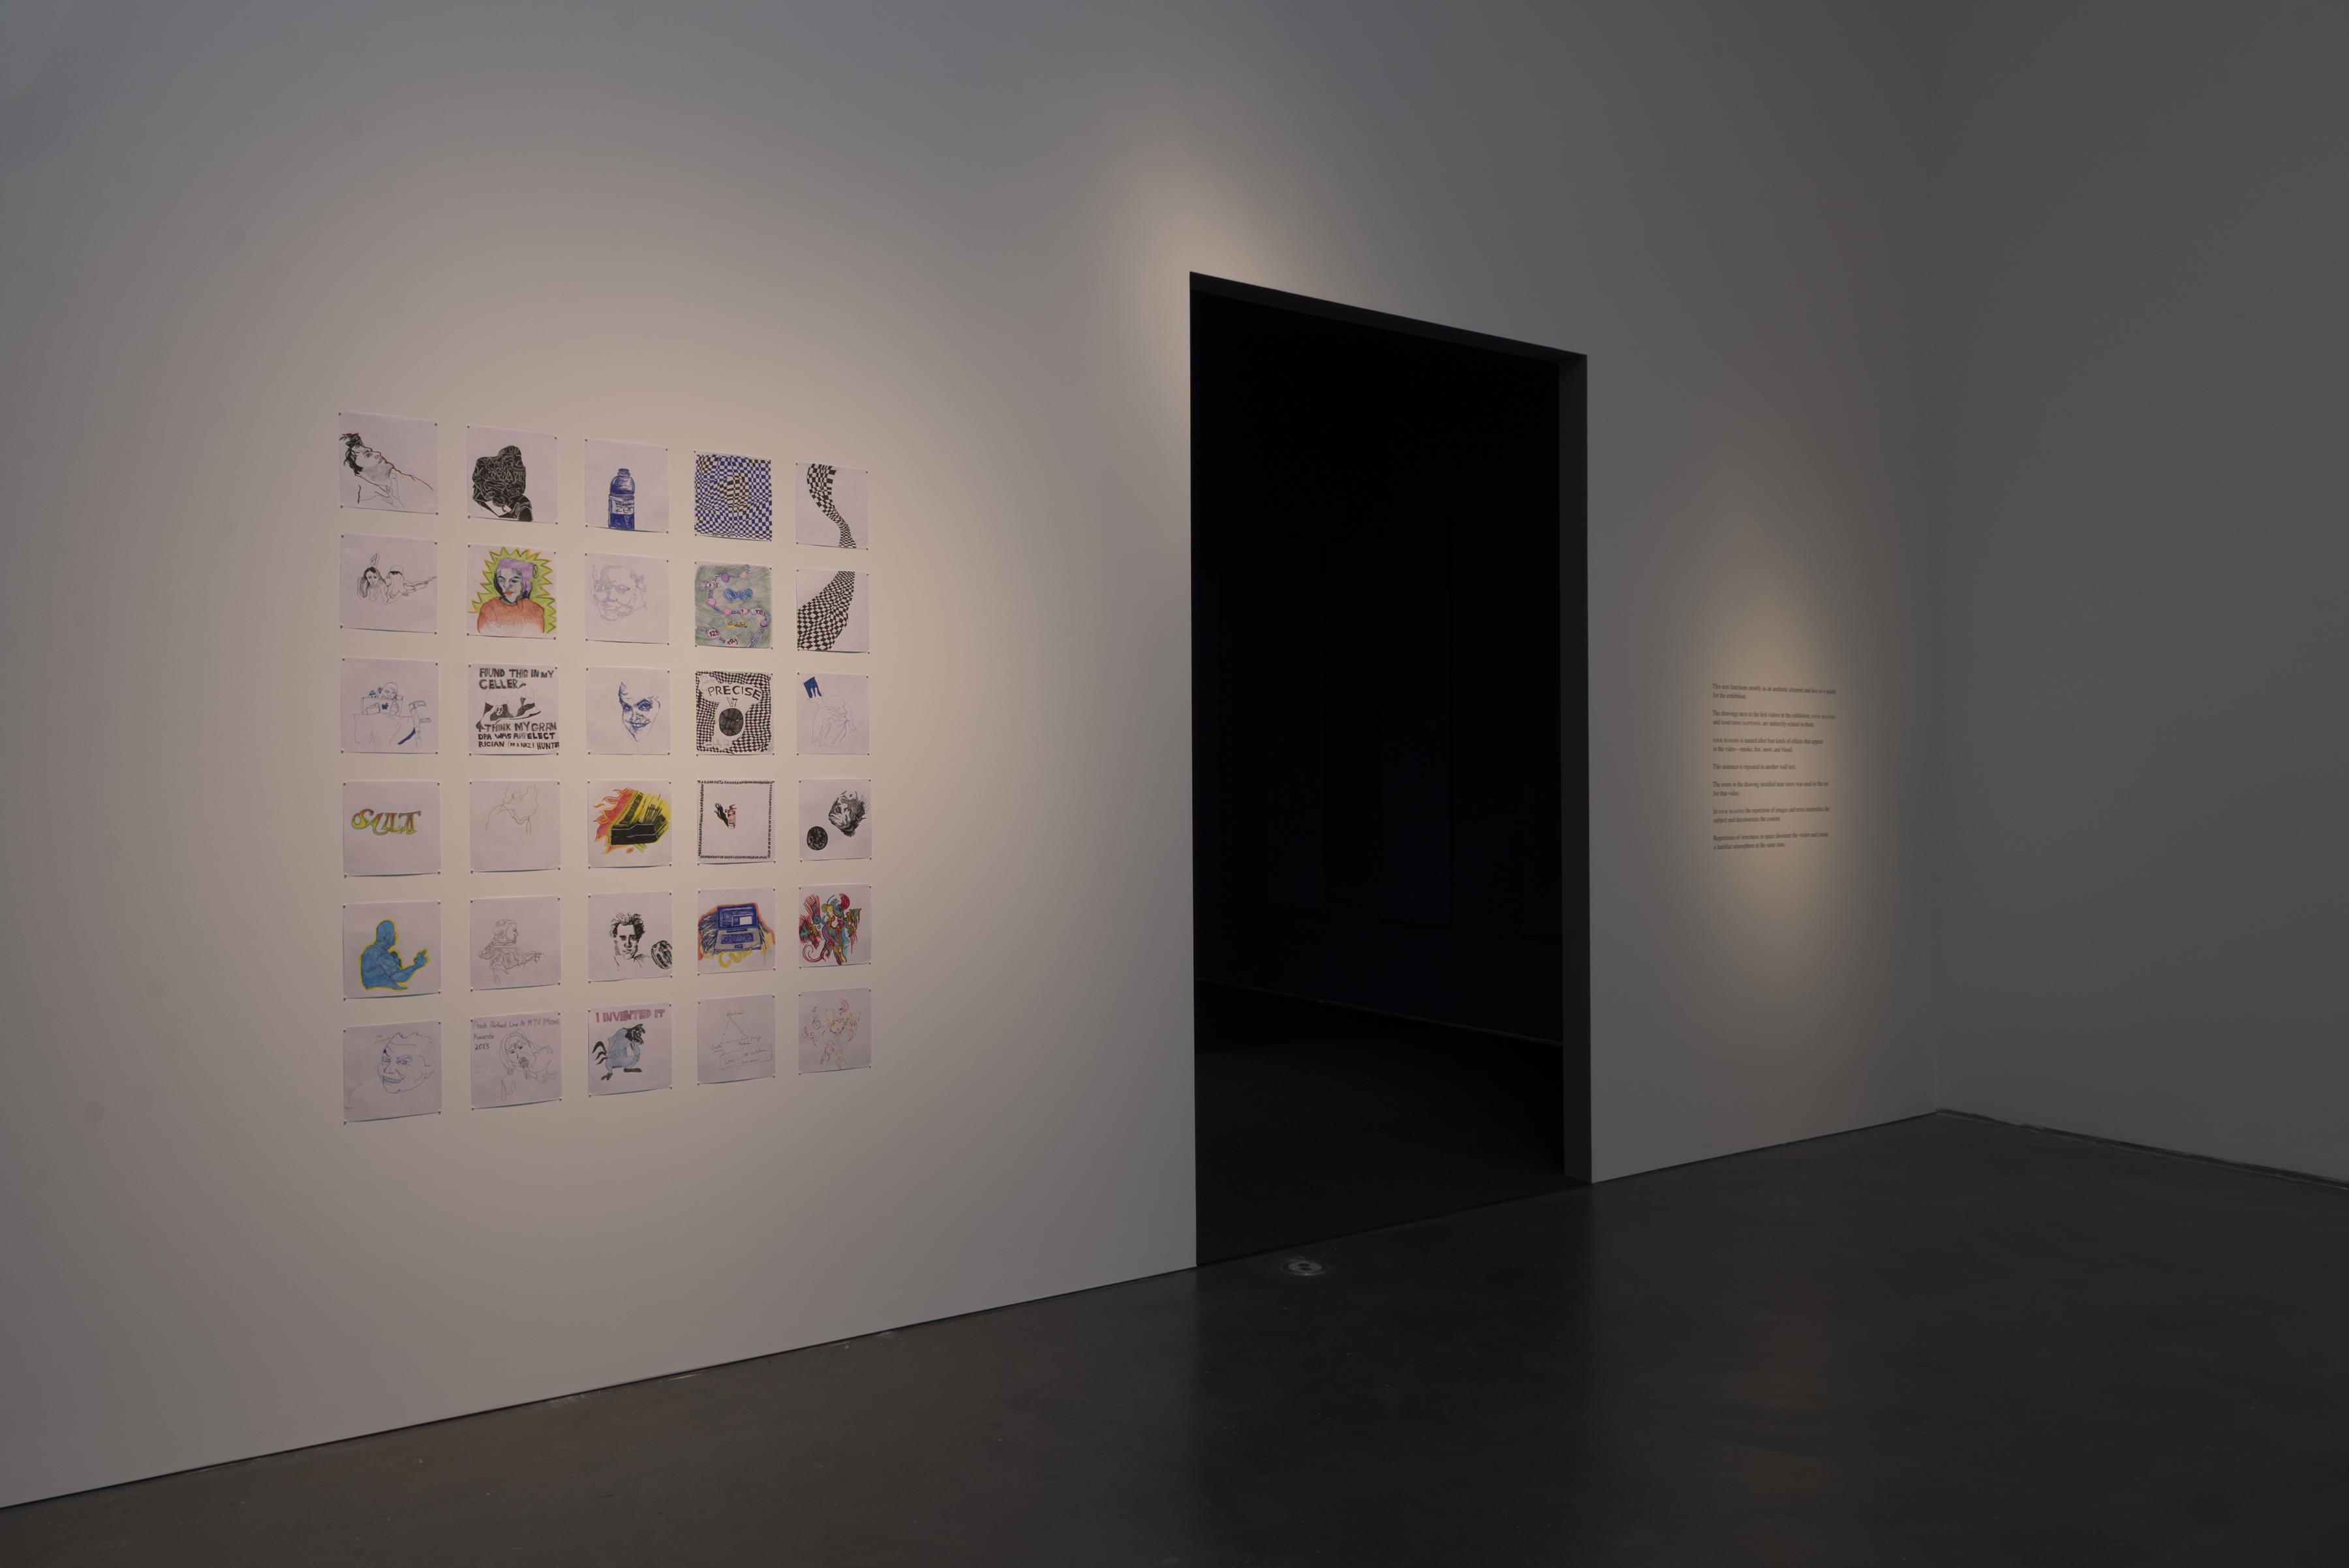 A six-by-five grid of square drawings next to a tall black rectangular doorway